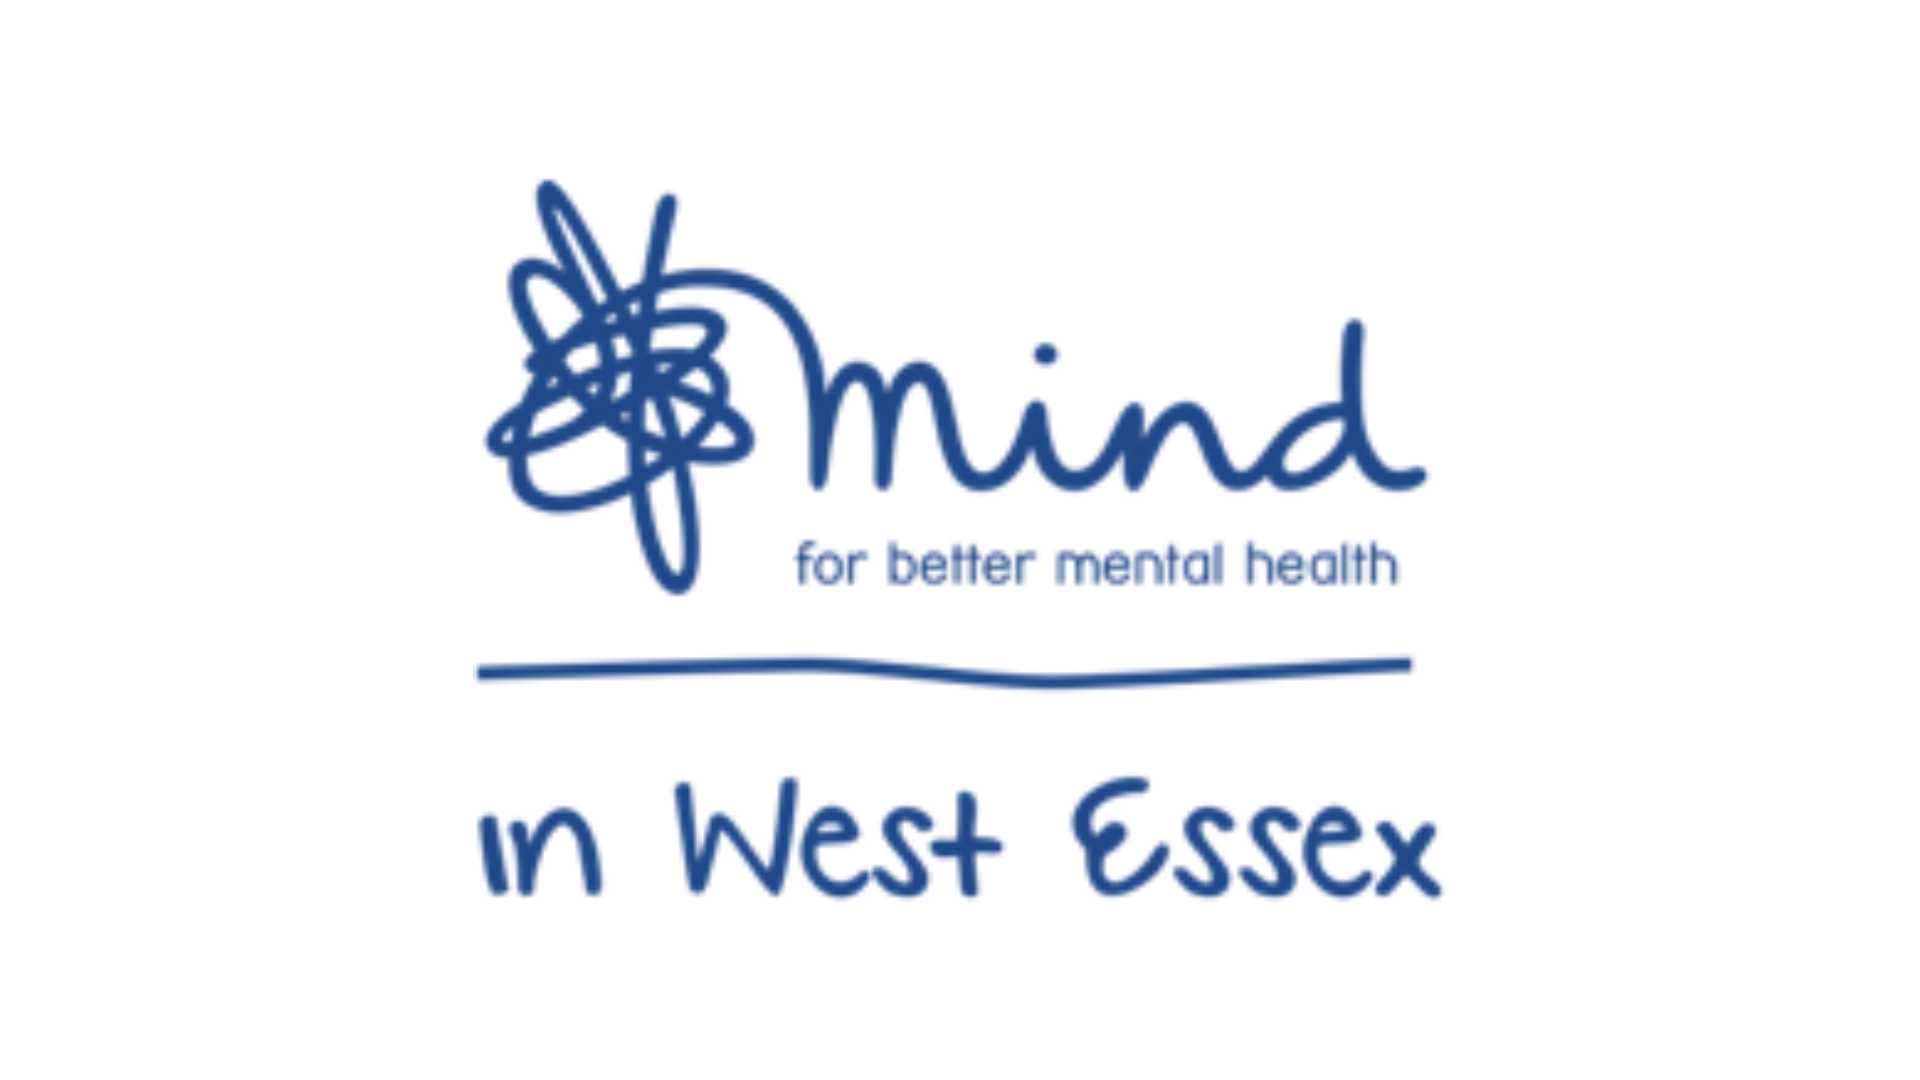 Healthy Minds (West Essex) Working together to improve mental health in Essex